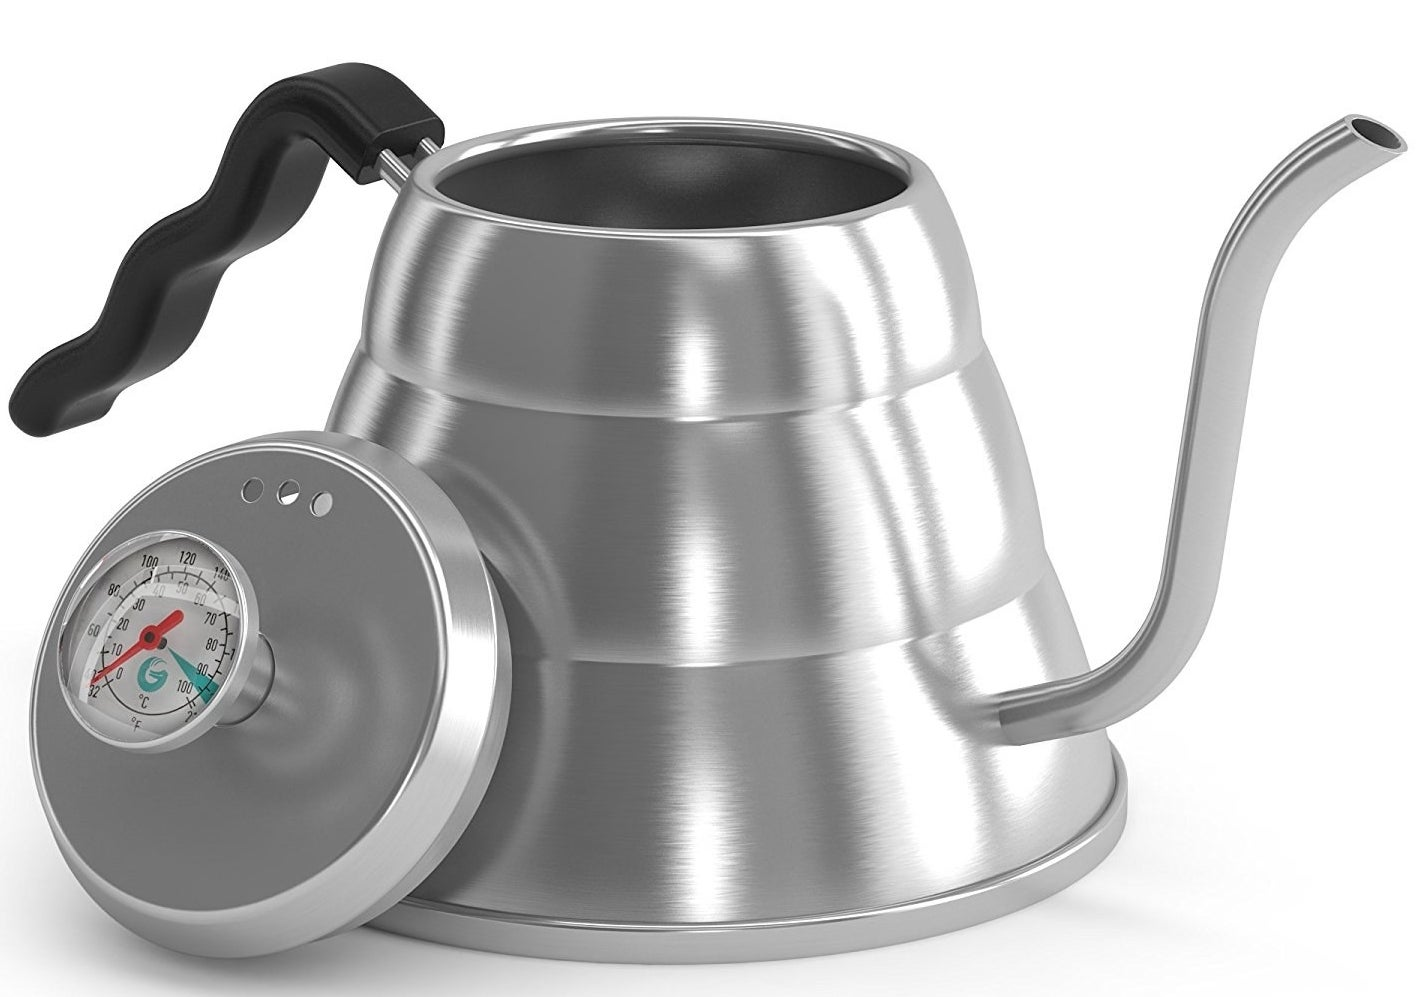 a stainless steel kettle with a thin, curved spout and a lid with a thermometer in it